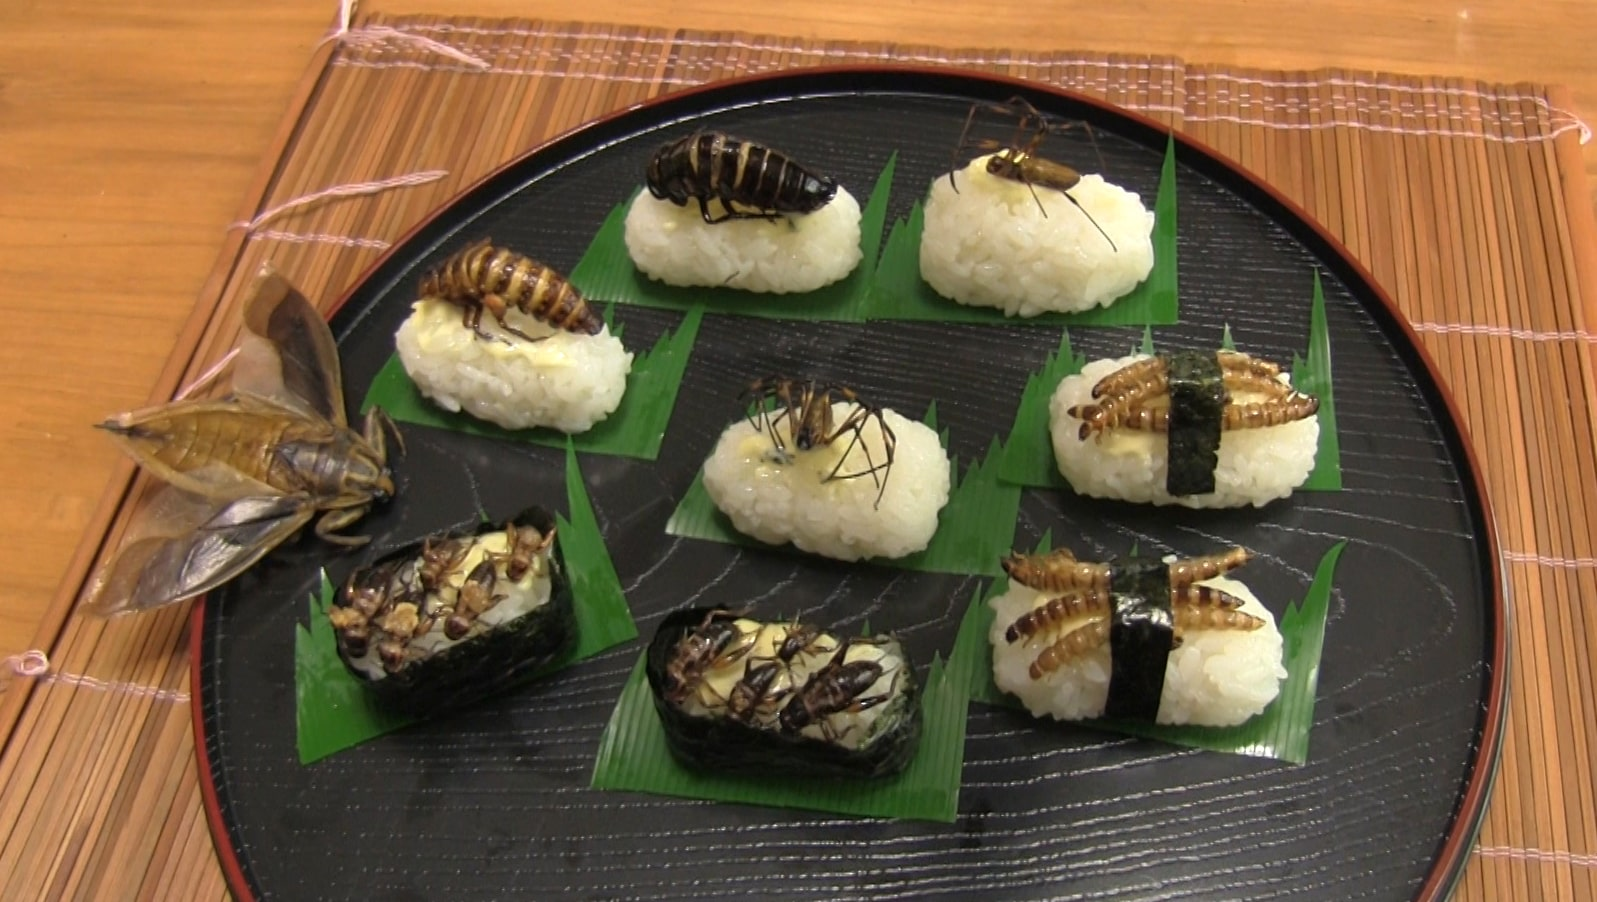 Weirdest Japanese Food 17 - insect sushi